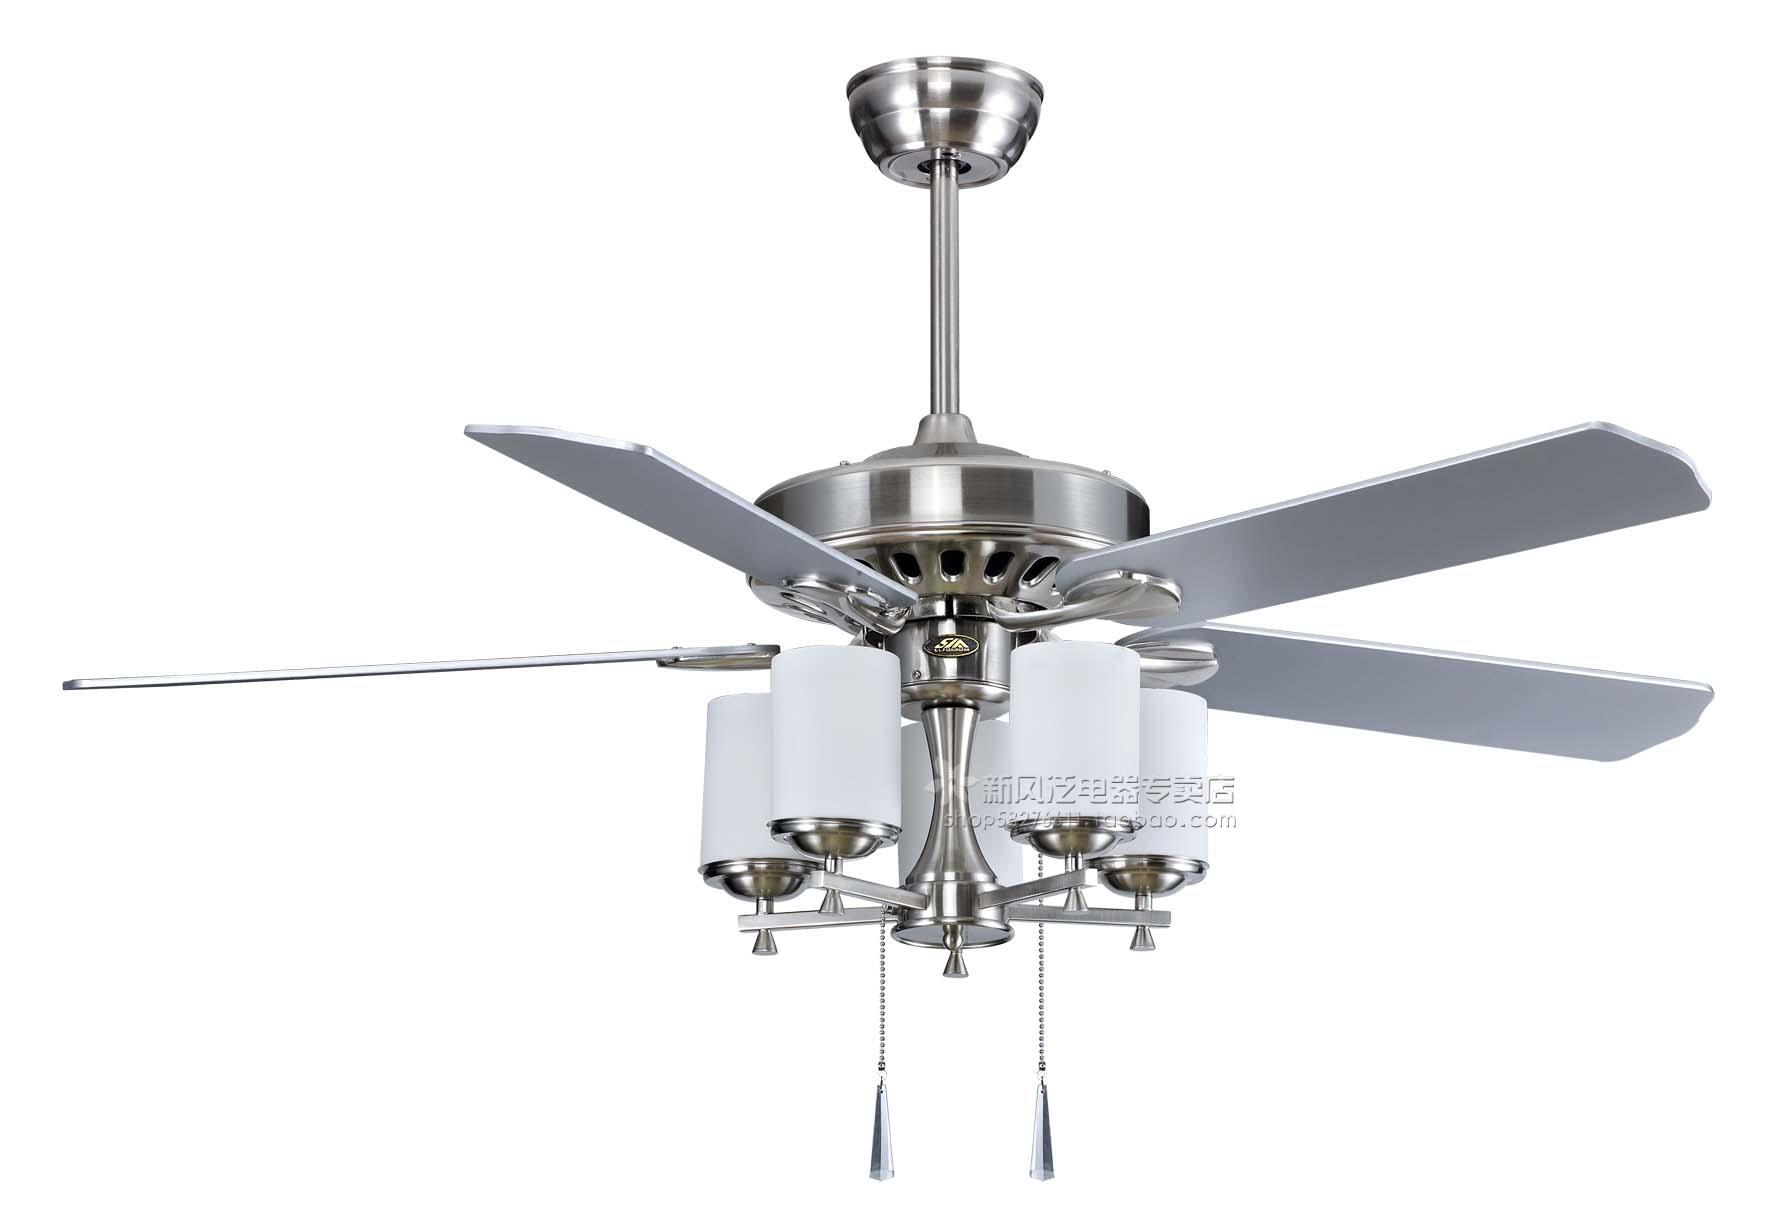 Ceiling fan in